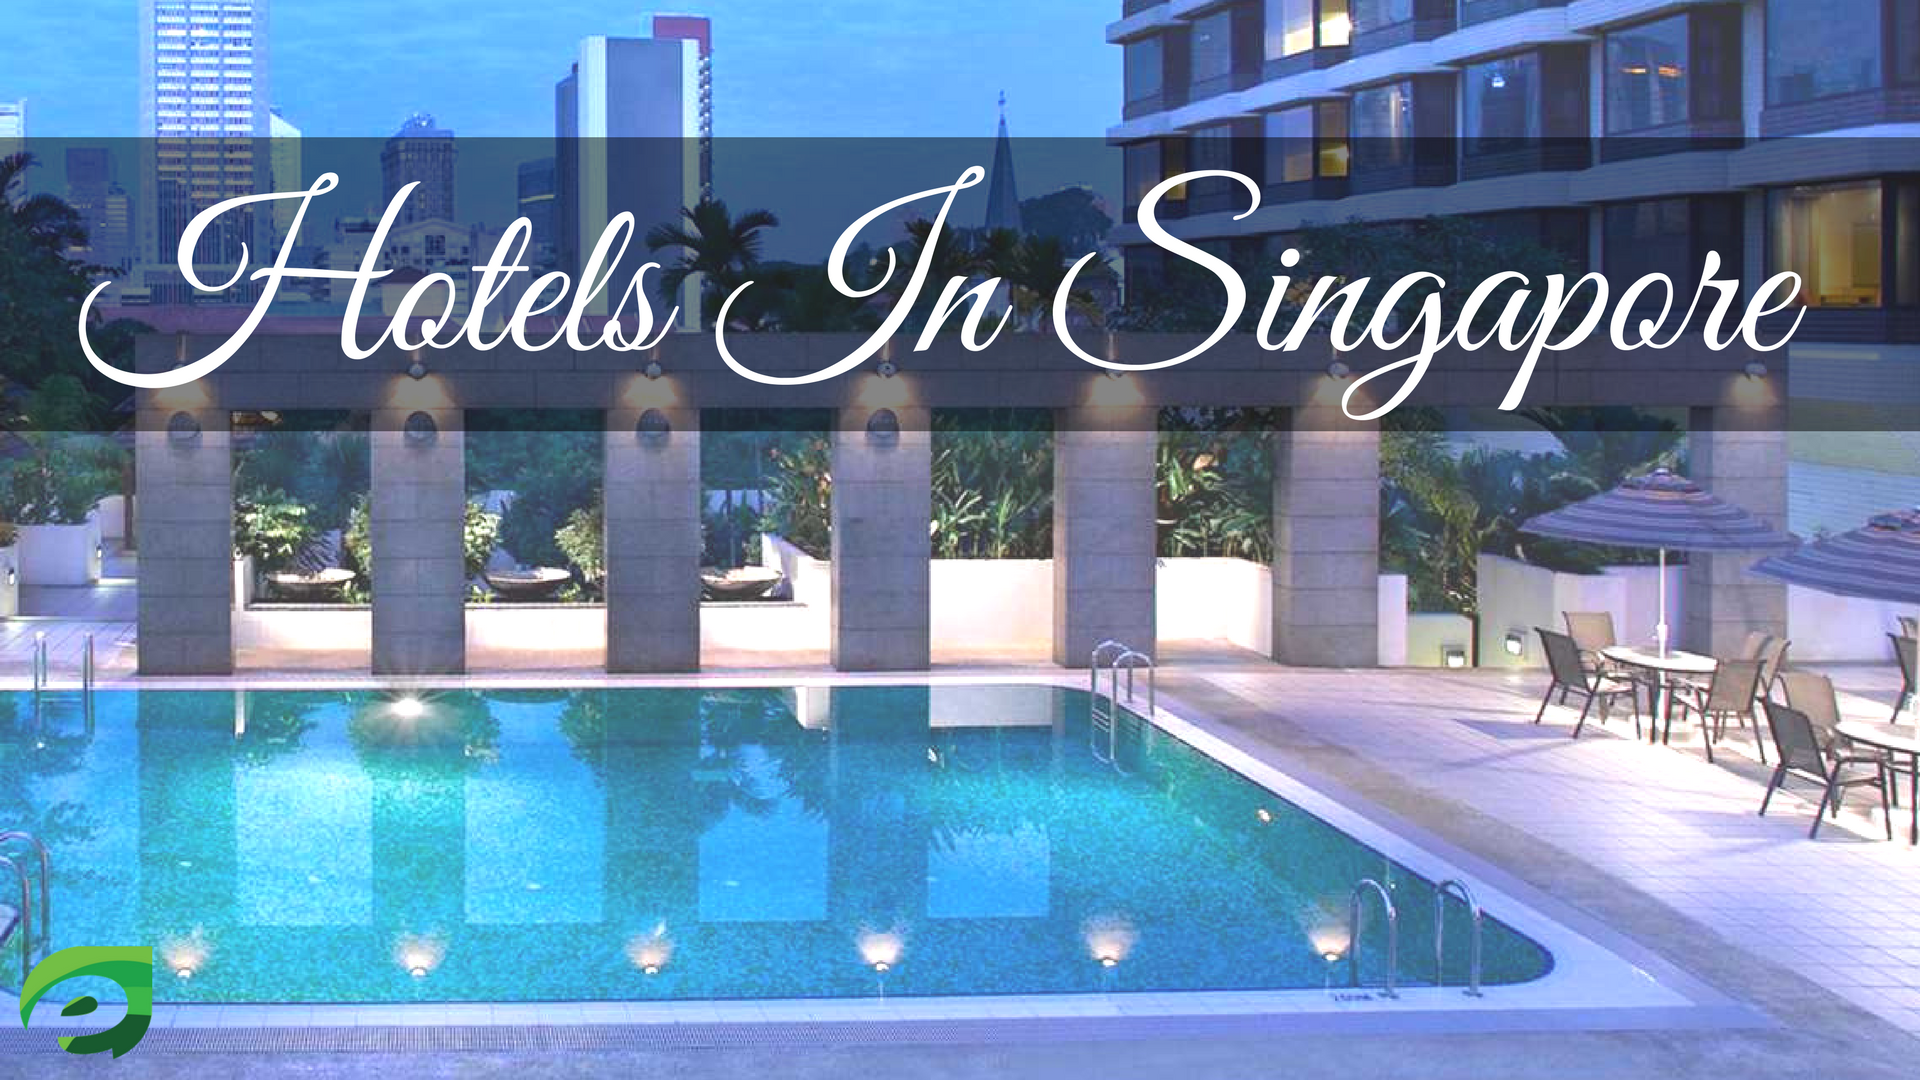 Singapore travel guide- Hotels